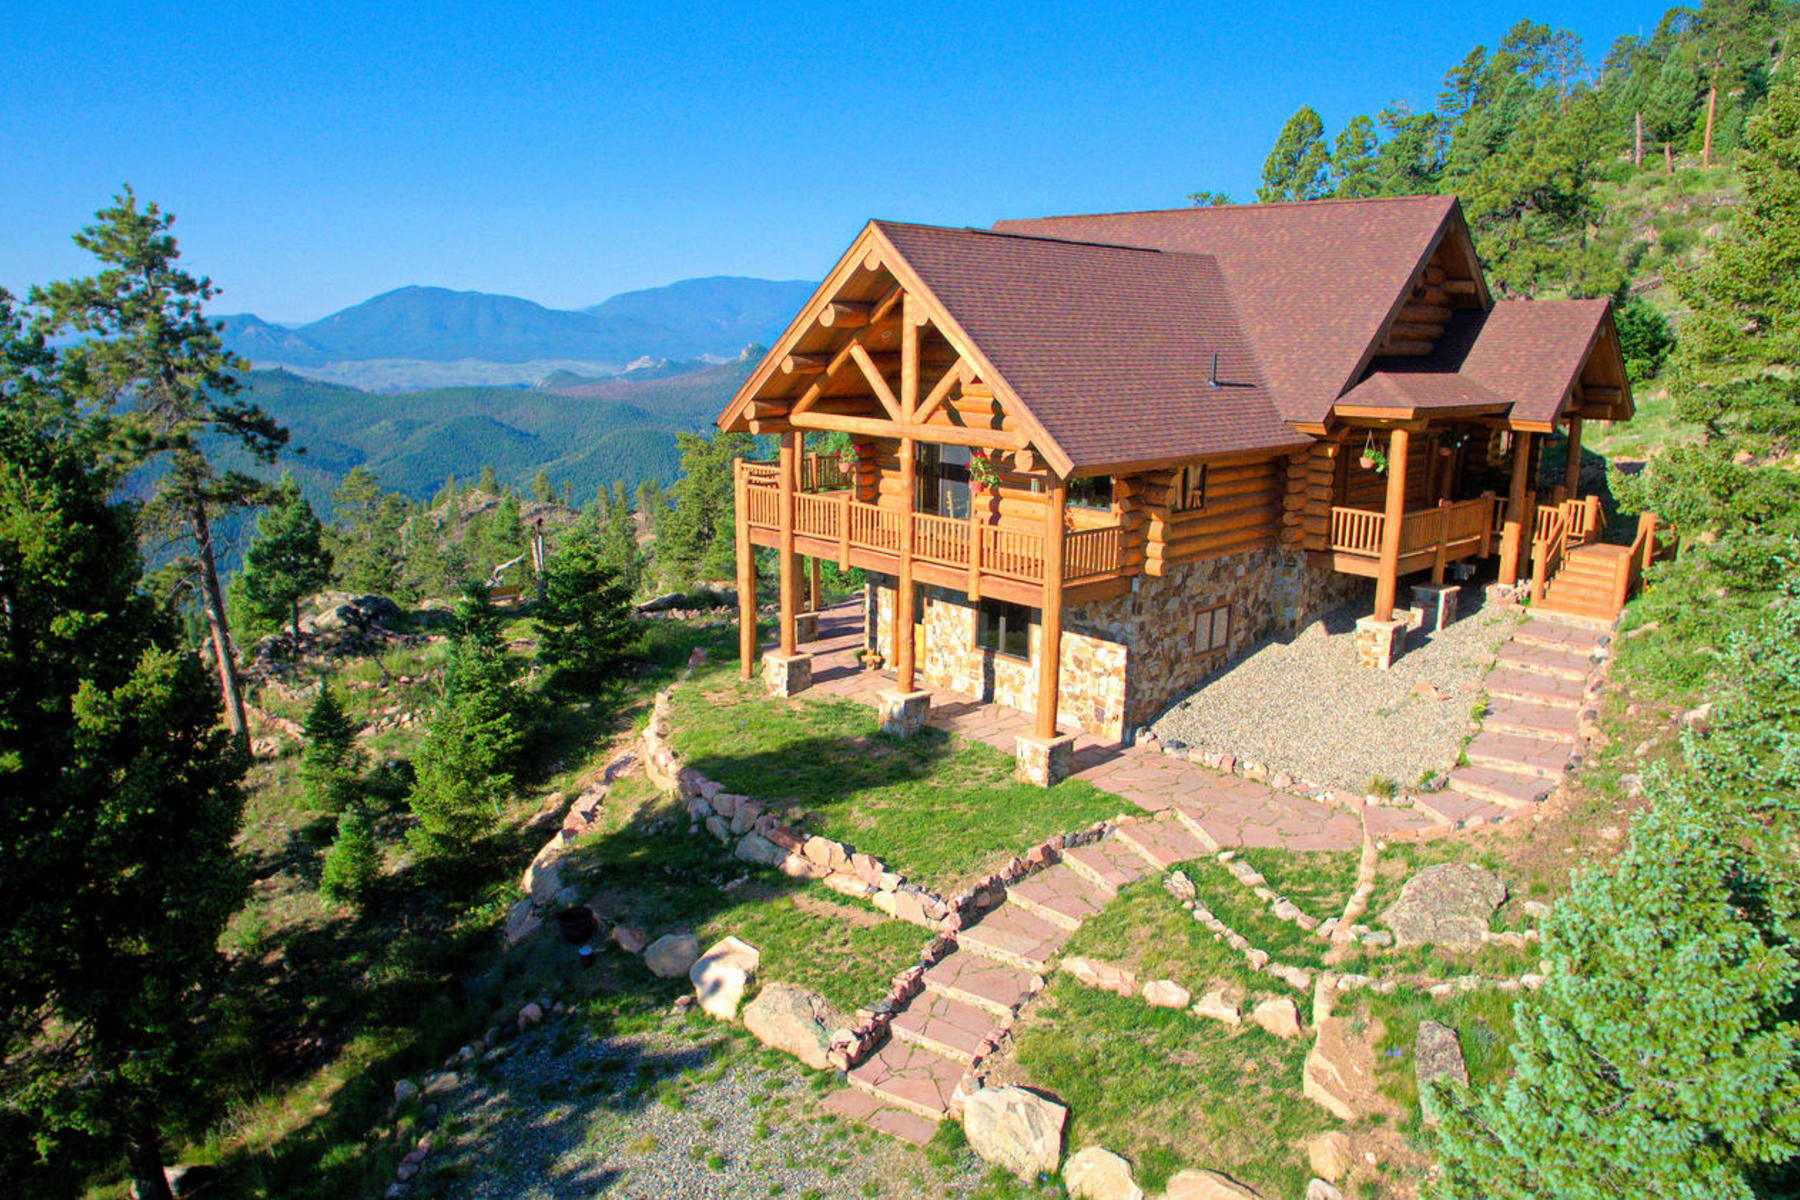 Single Family Home for Sale at Views are the Hallmark of this Full Round Log Constructed Home 13615 Pine Country Lane Conifer, Colorado, 80433 United States